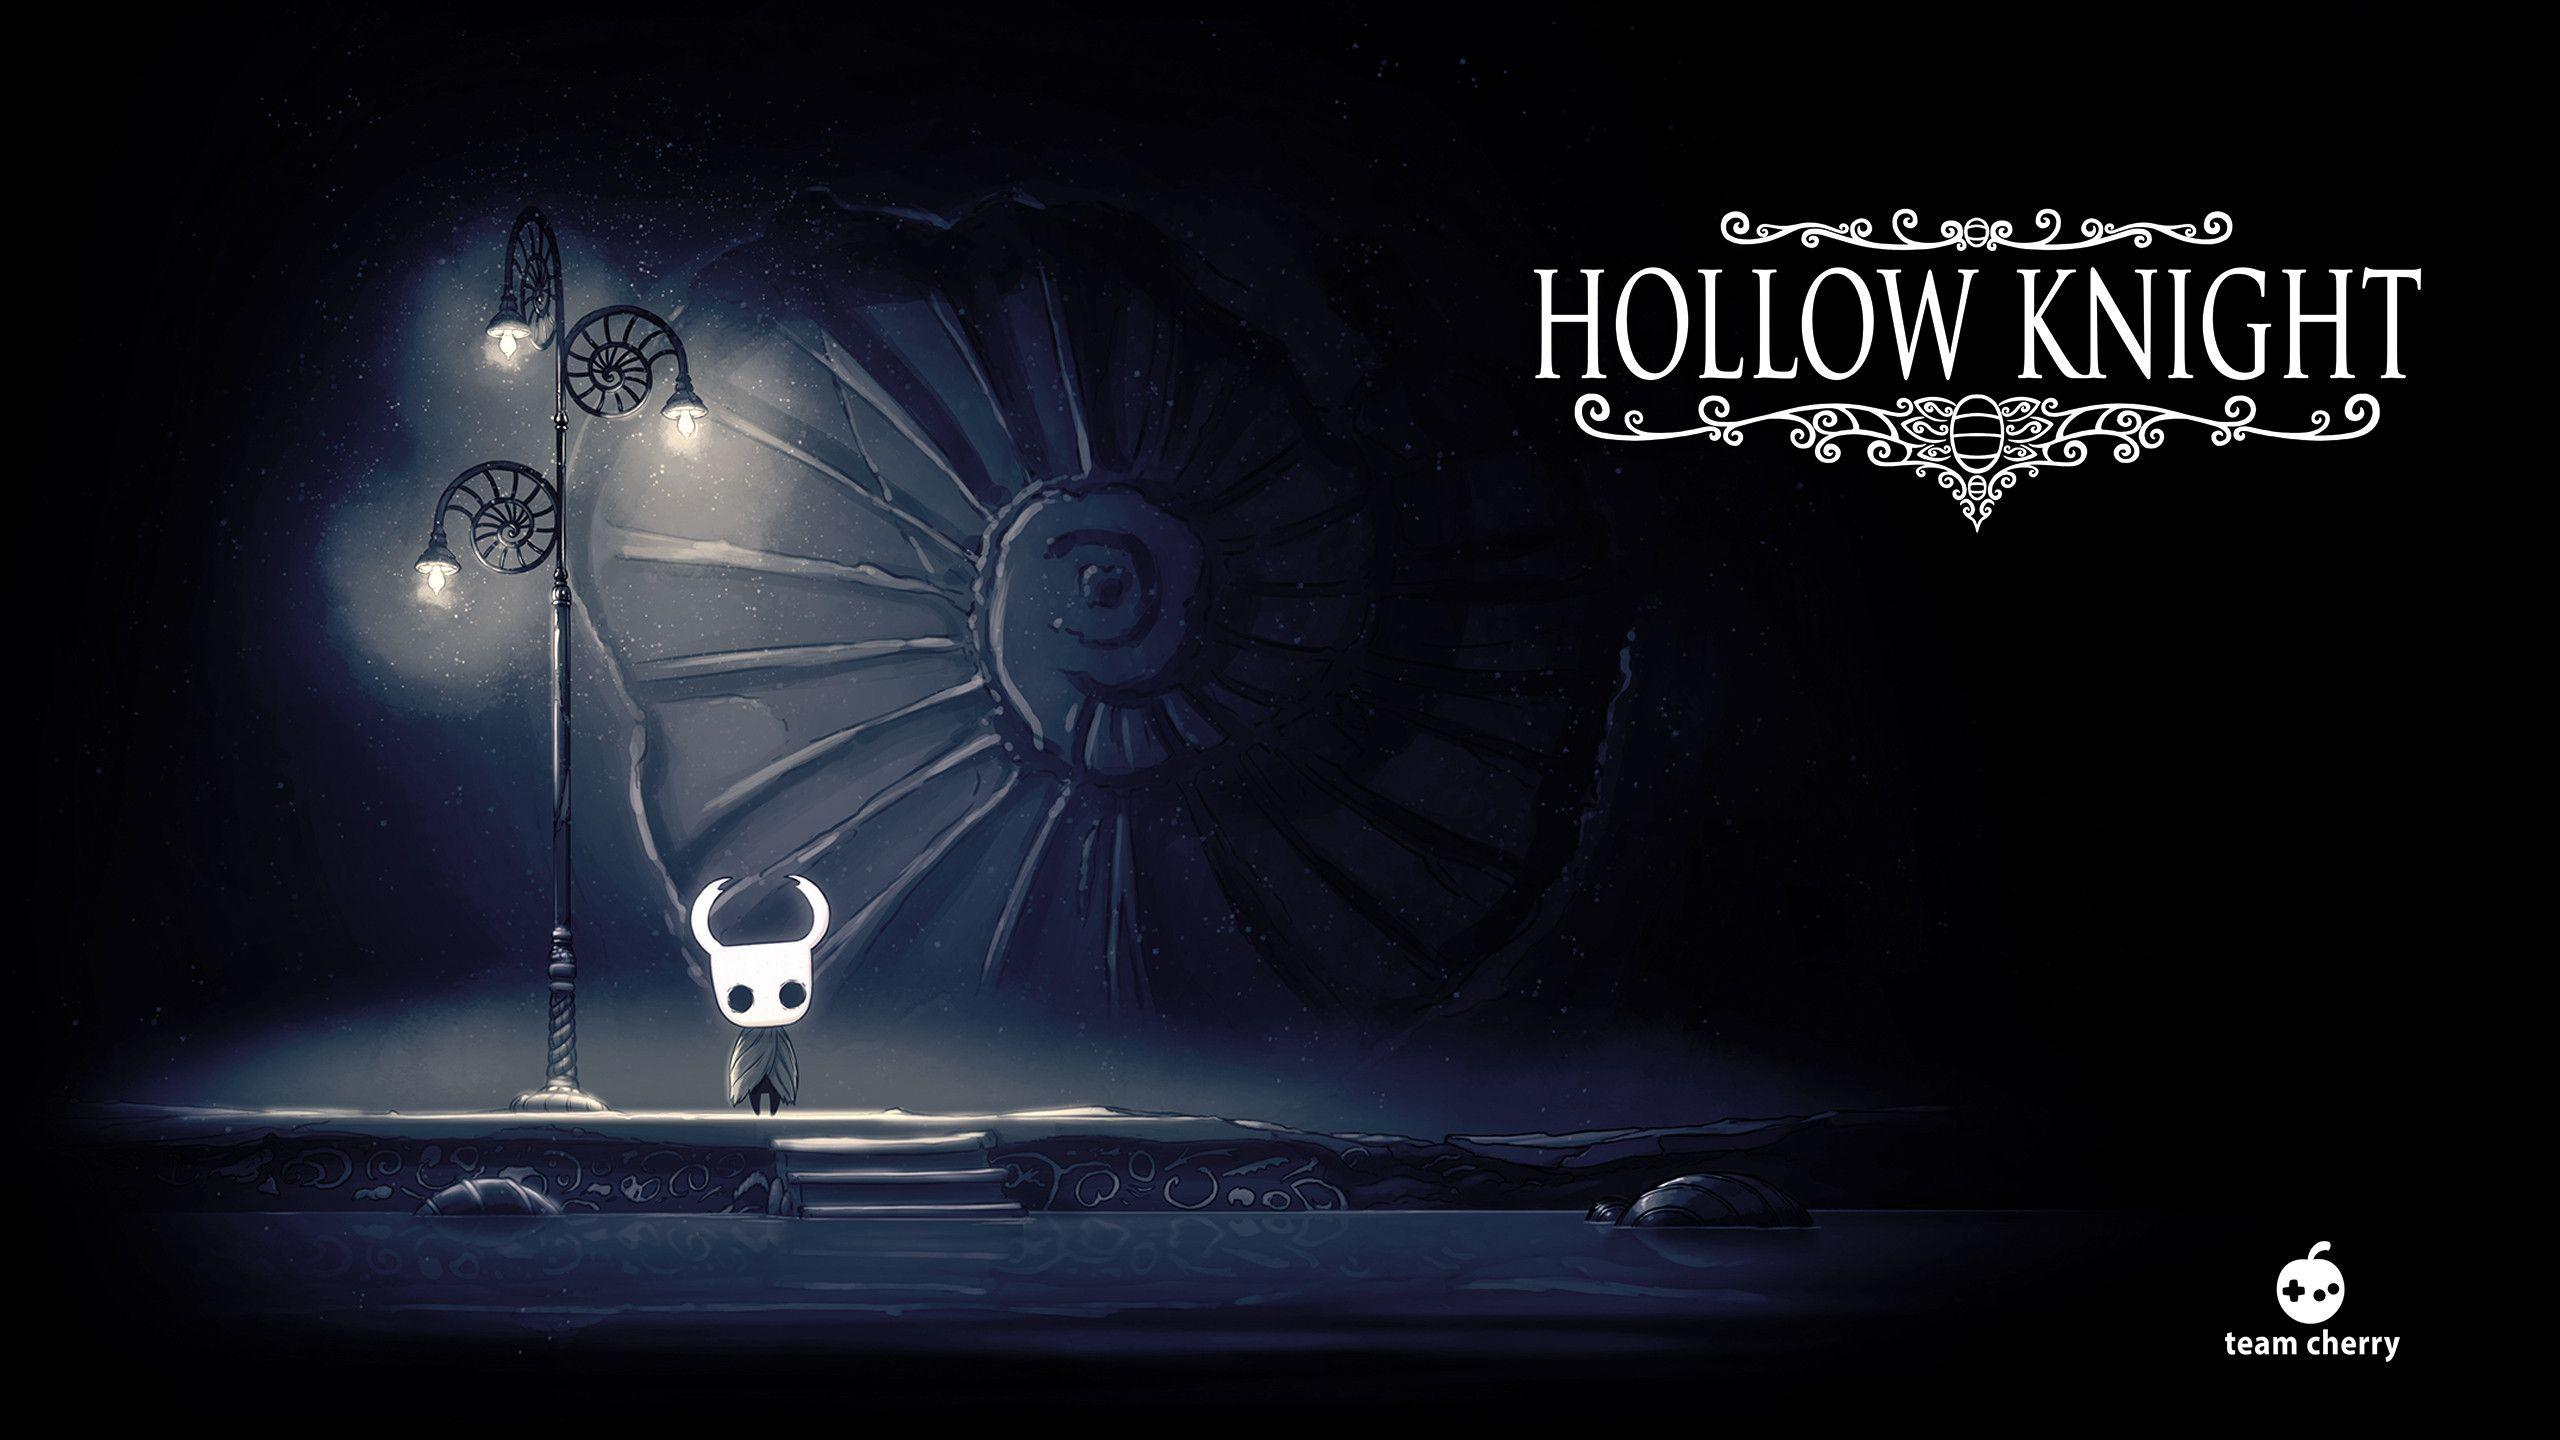 Hollow Knight backgrounds